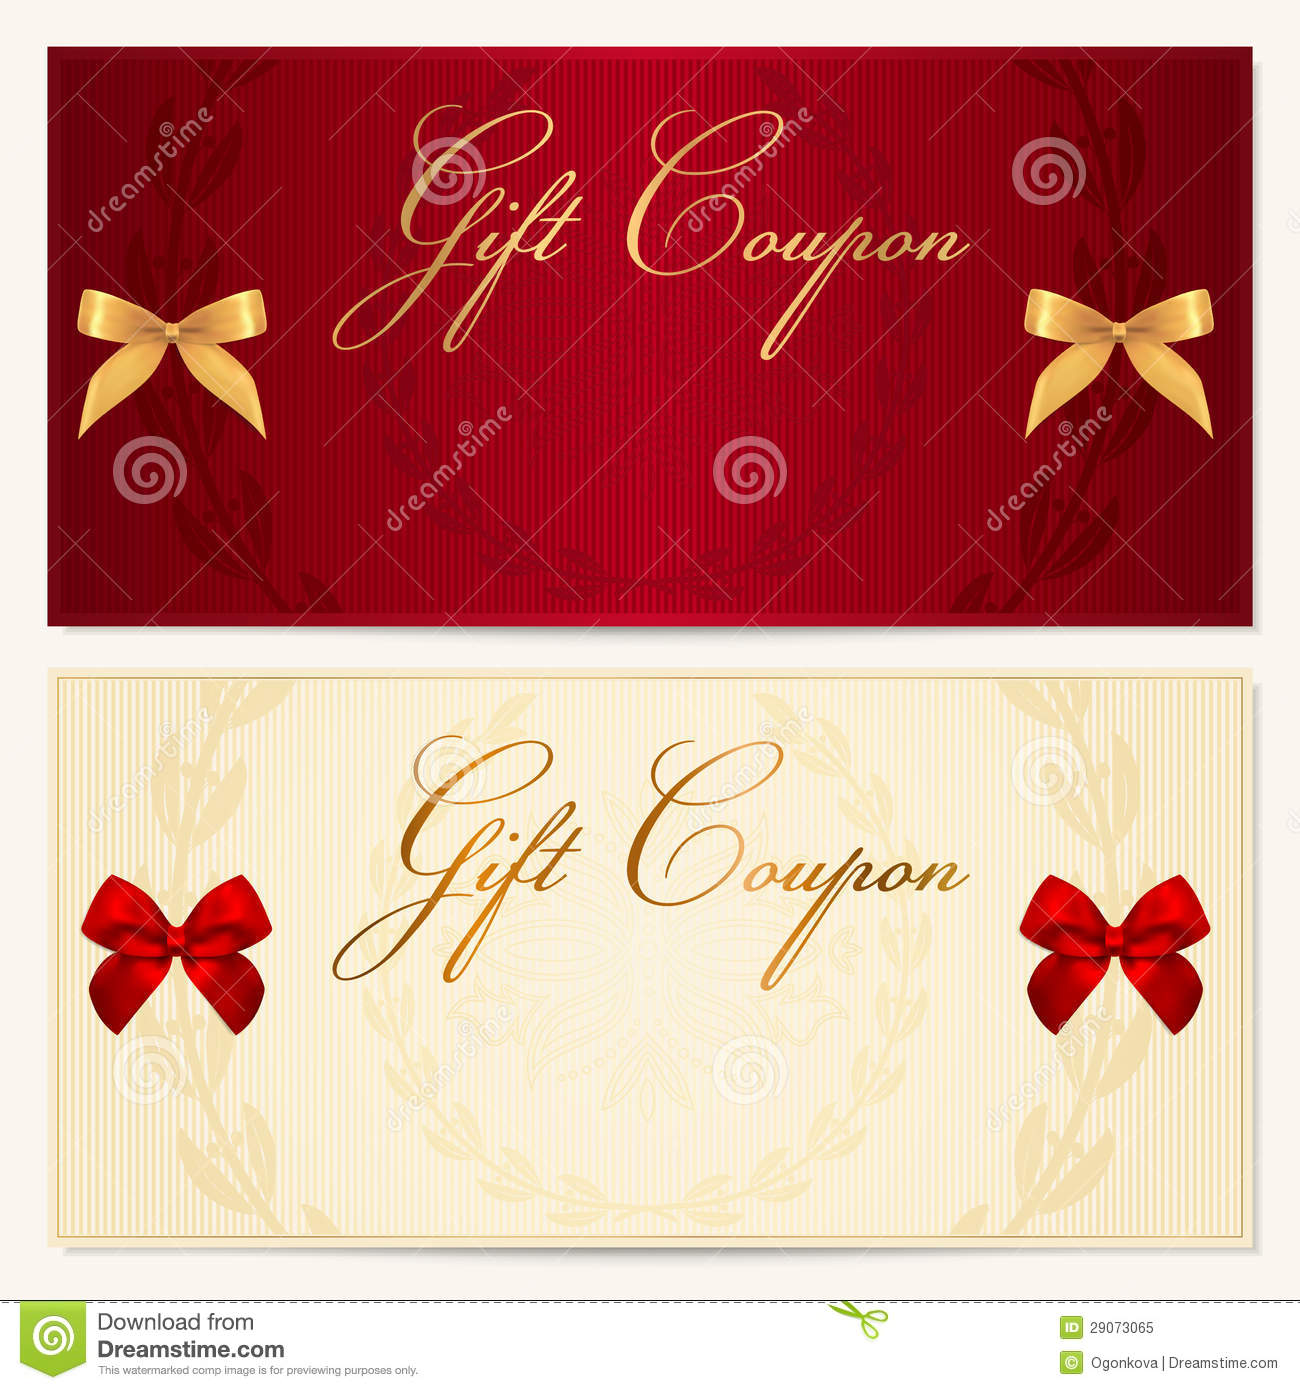 Gift voucher coupon template bow ribbons stock vector gift voucher coupon template bow ribbons saigontimesfo